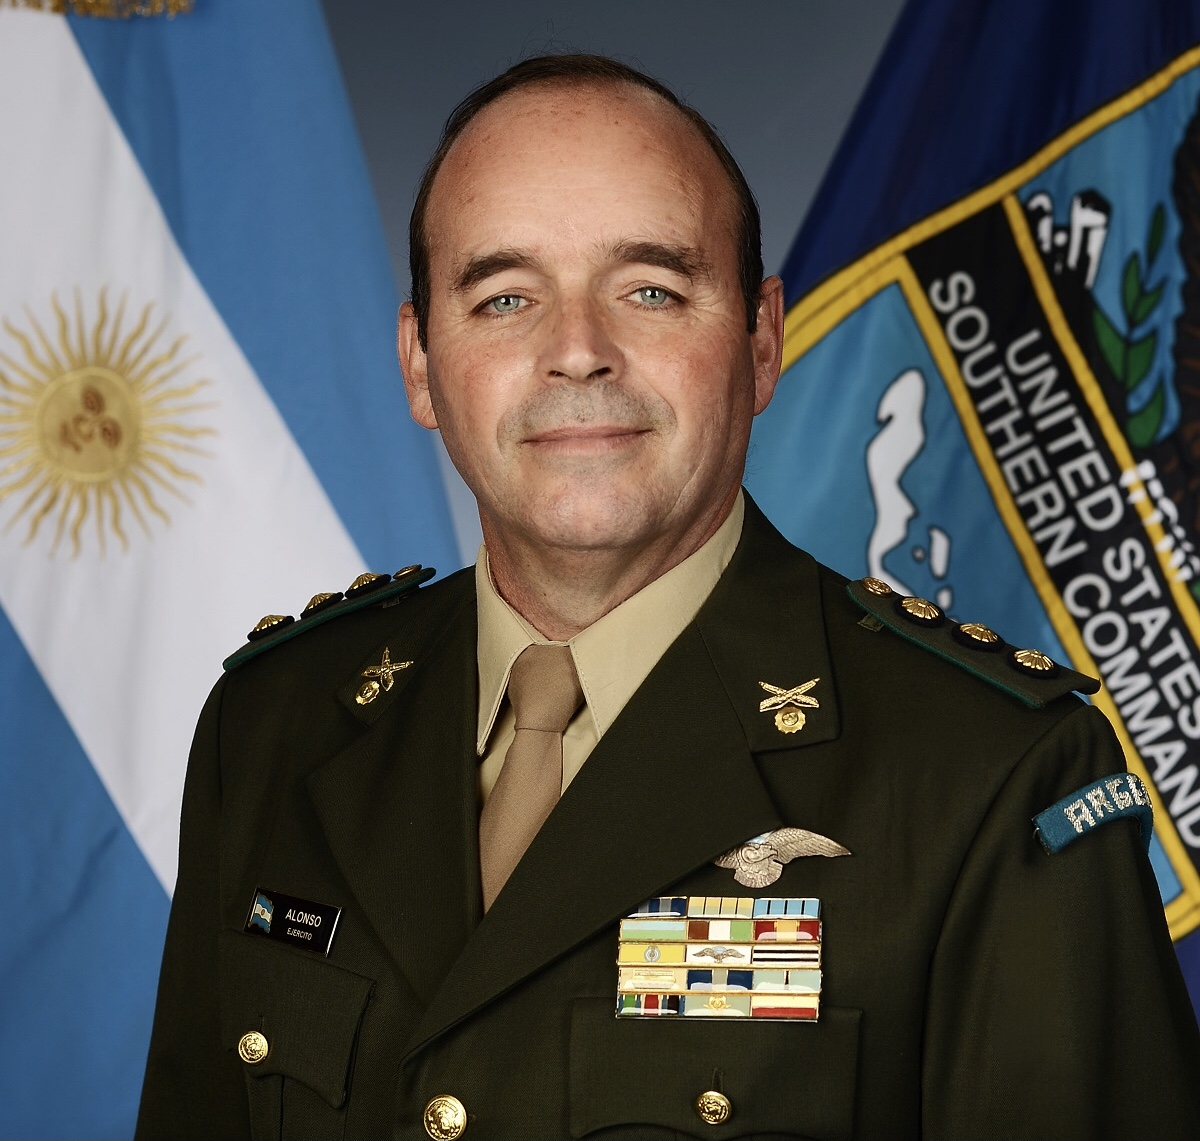 Argentine Military Advisor is Committed to Interoperability